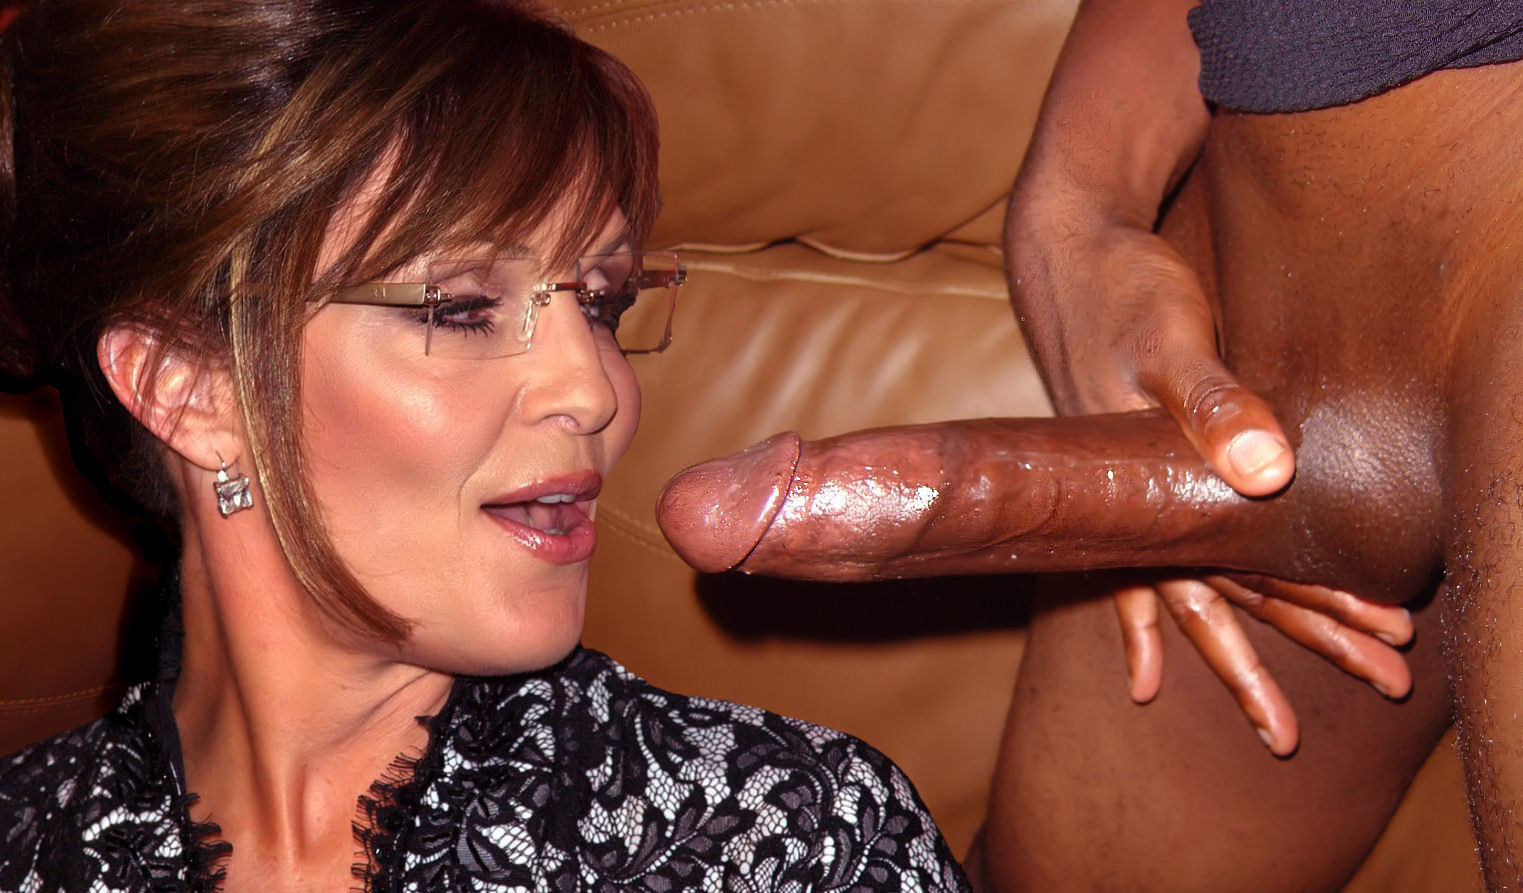 sarah palin porn fakes with hardcore sarah palin collection high quality porn pic